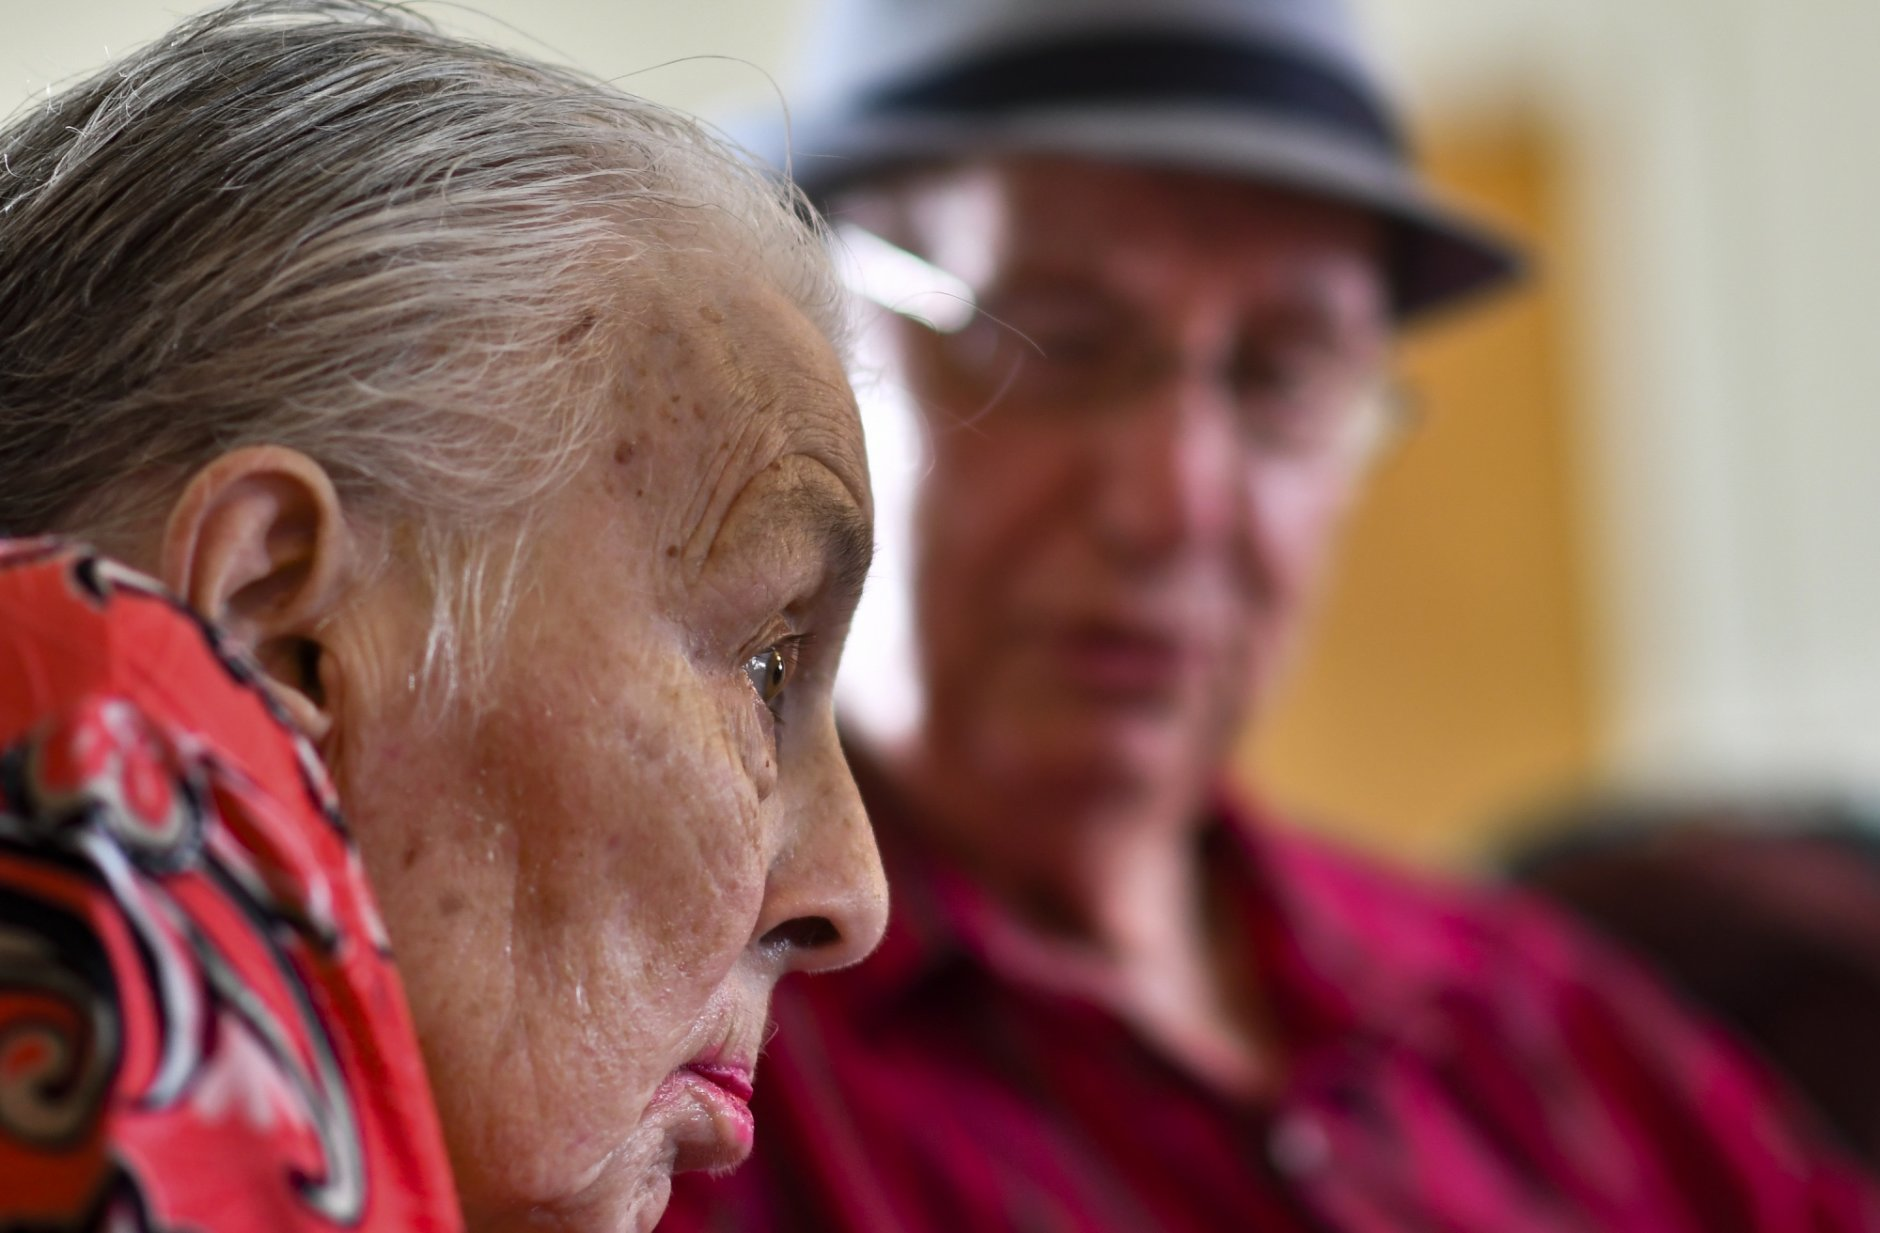 In this Tuesday, Aug. 21, 2018 photo, Jackie West, 86, of Eaton Rapids, listens as her husband Don, 90, sings to her during their anniversary party at the adult foster care home in Charlotte, Mich., where she has lived since a stroke in June of 2017. (Matthew Dae Smith/Lansing State Journal via AP)